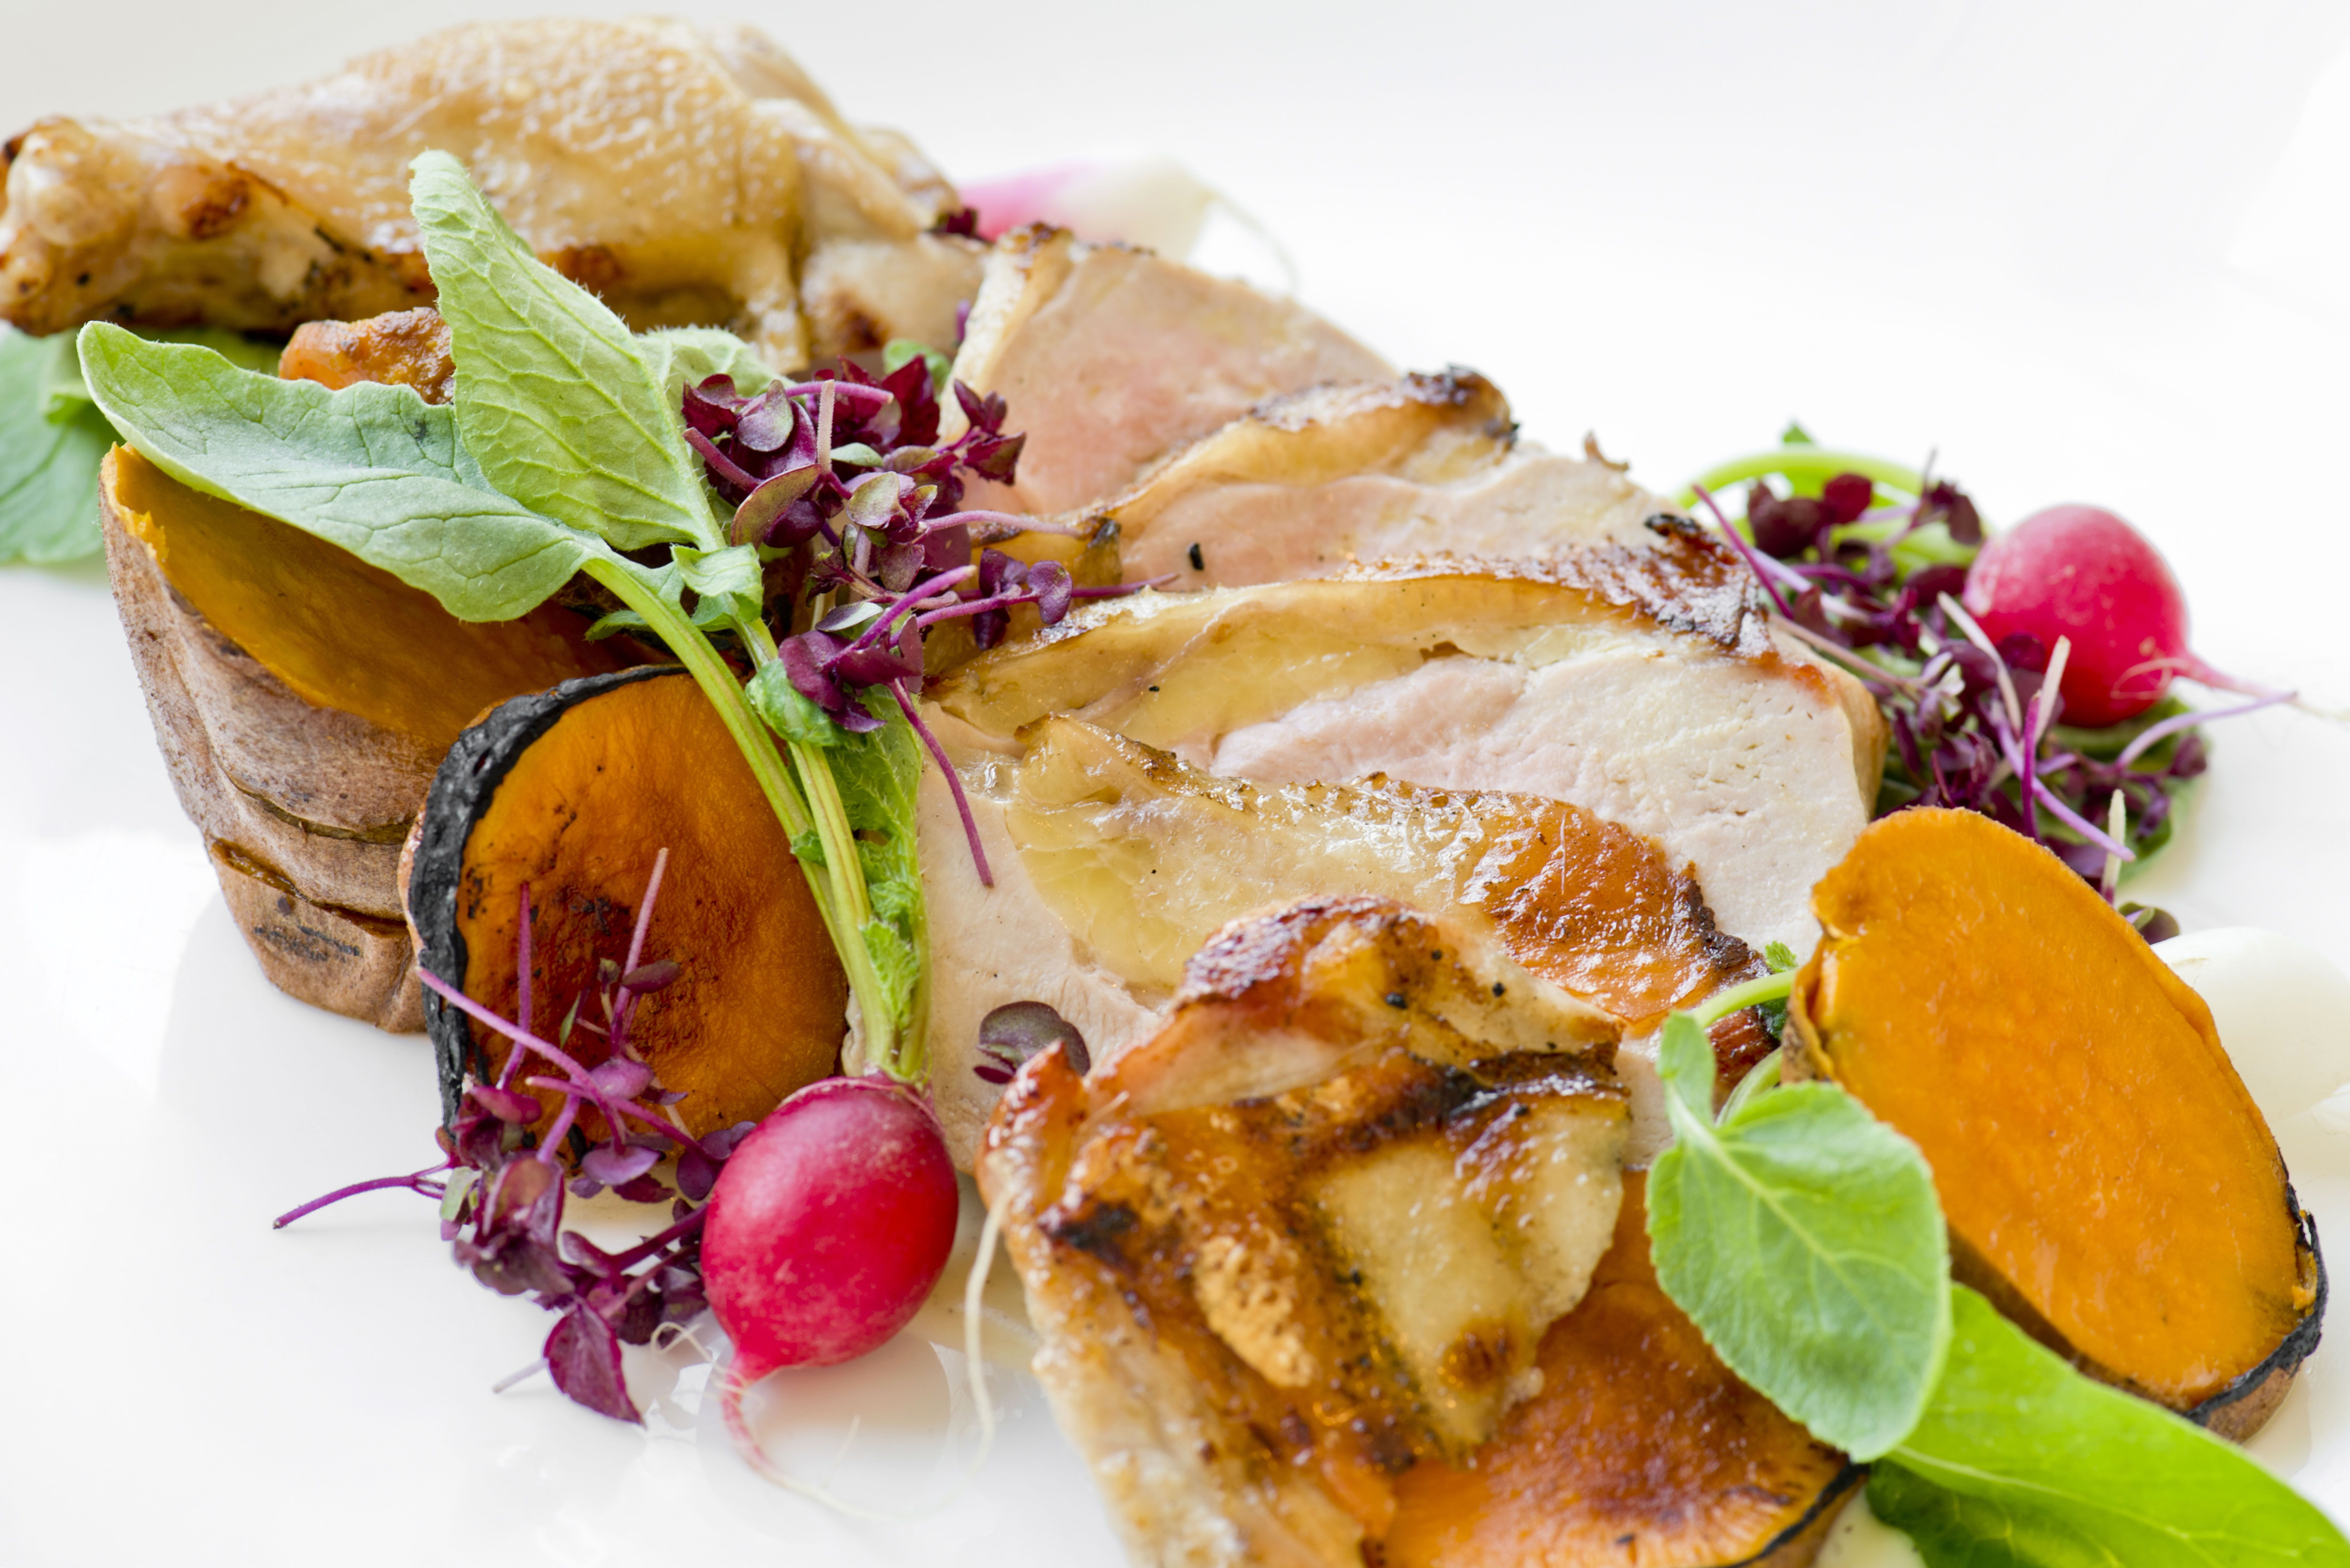 Pheasant- Traditional flavors of radish & butter, roasted local sweet potato